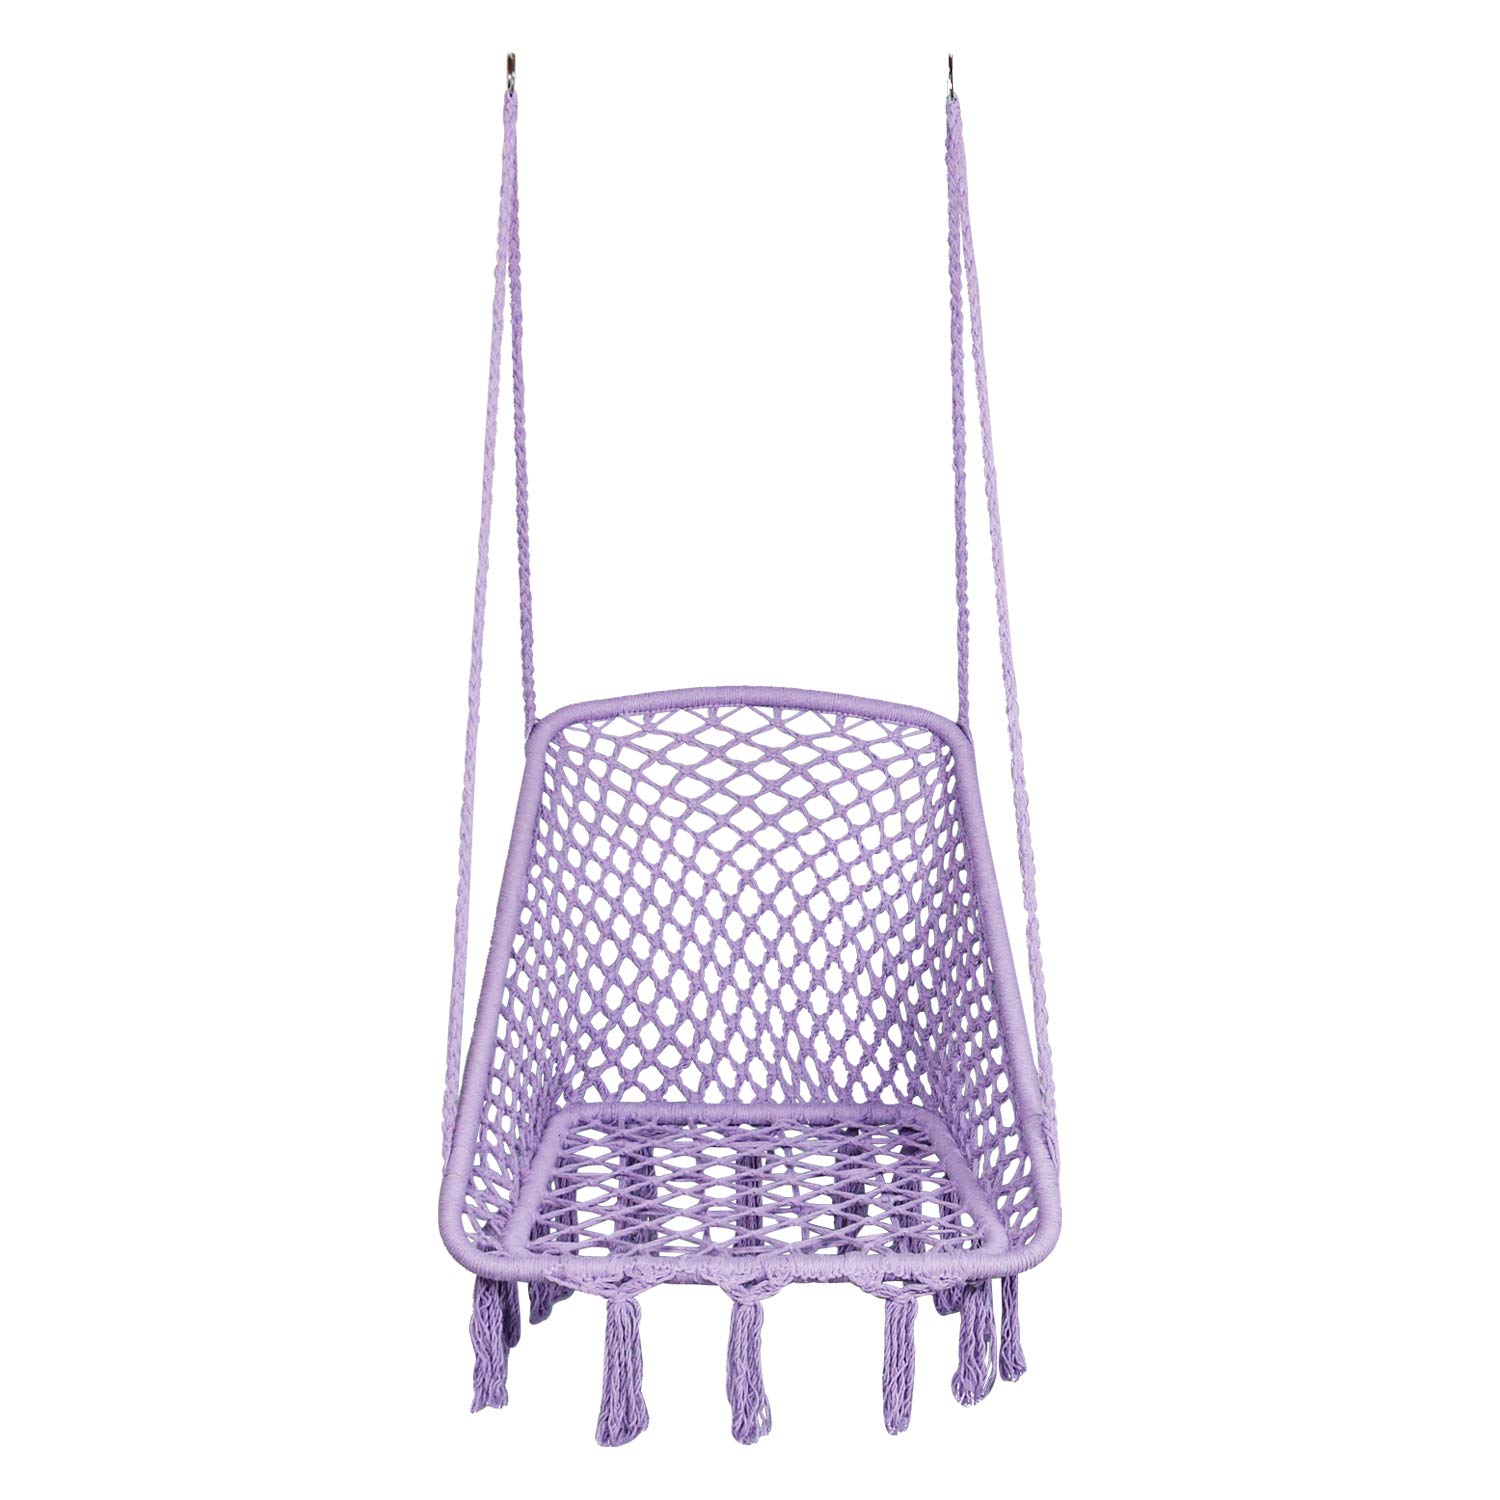 LAZZO Hammock Chair Hanging Knitted Mesh Cotton Rope Macrame Swing, 260 Pounds Capacity, 28 22.8 Seat Width,for Bedroom, Outdoors, Garden, Patio, Yard. Child, Girl, Adult Purple